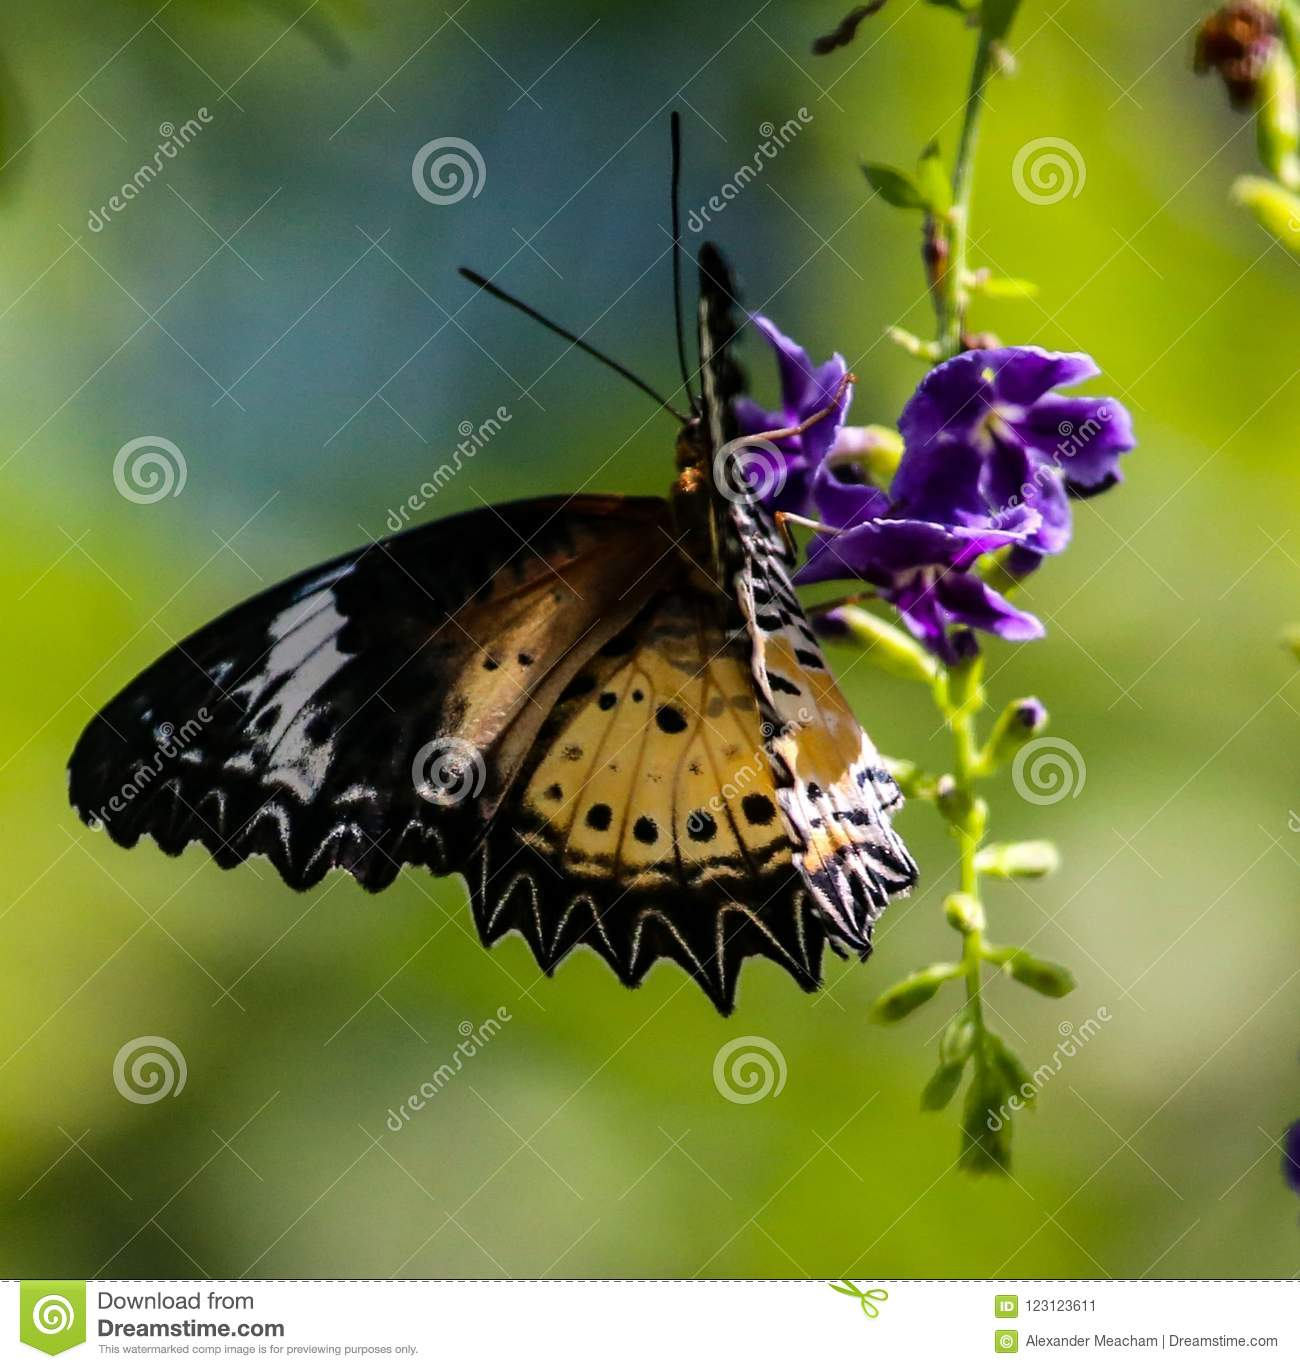 Brown Clipper butterfly on a purple flower